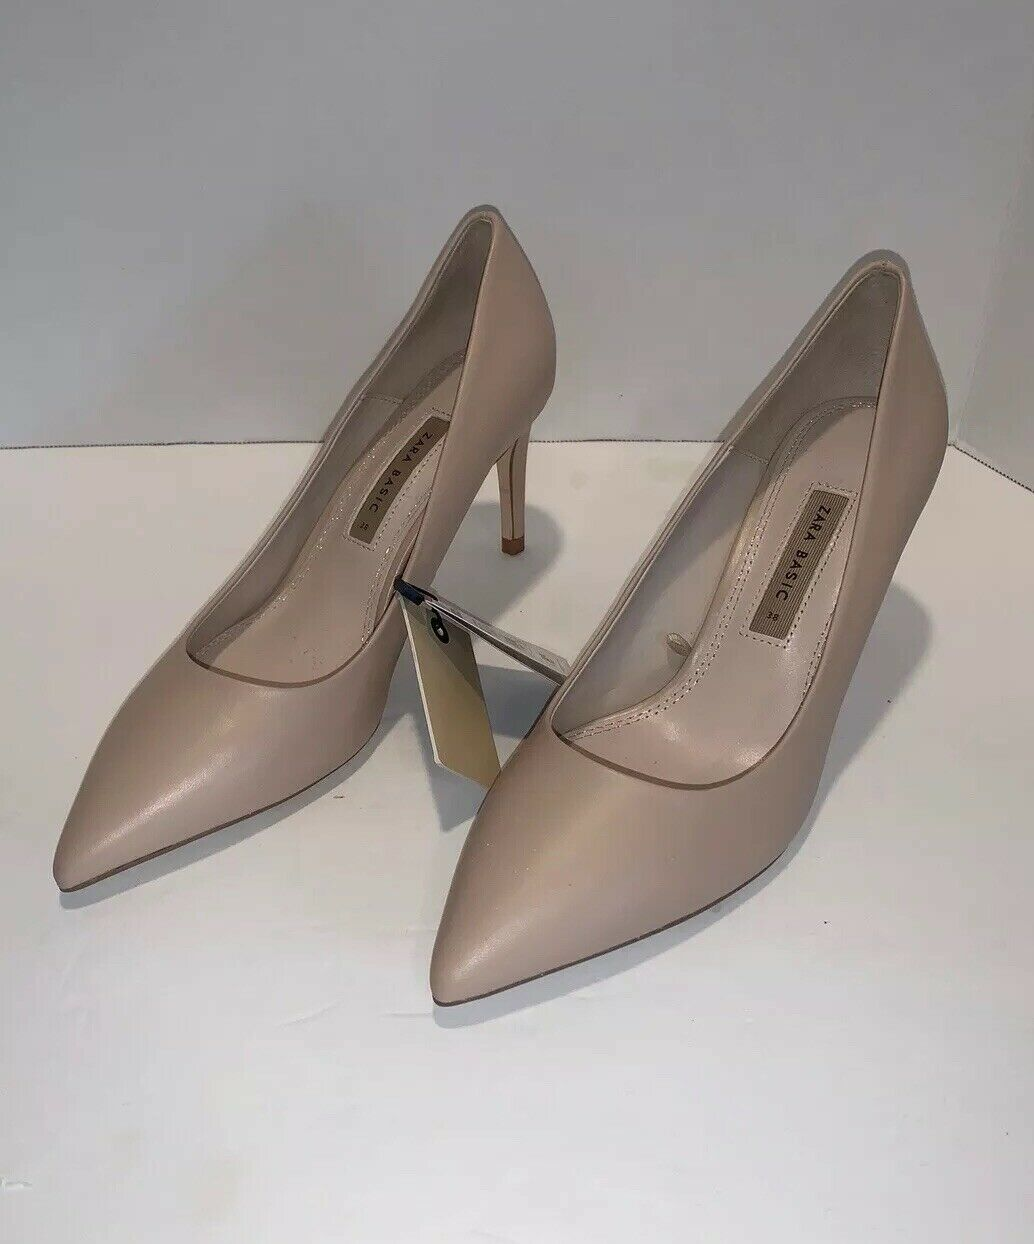 Zara Women's Beige Leather Pointy Pumps - NEW Size 7.5 REF 2911 201